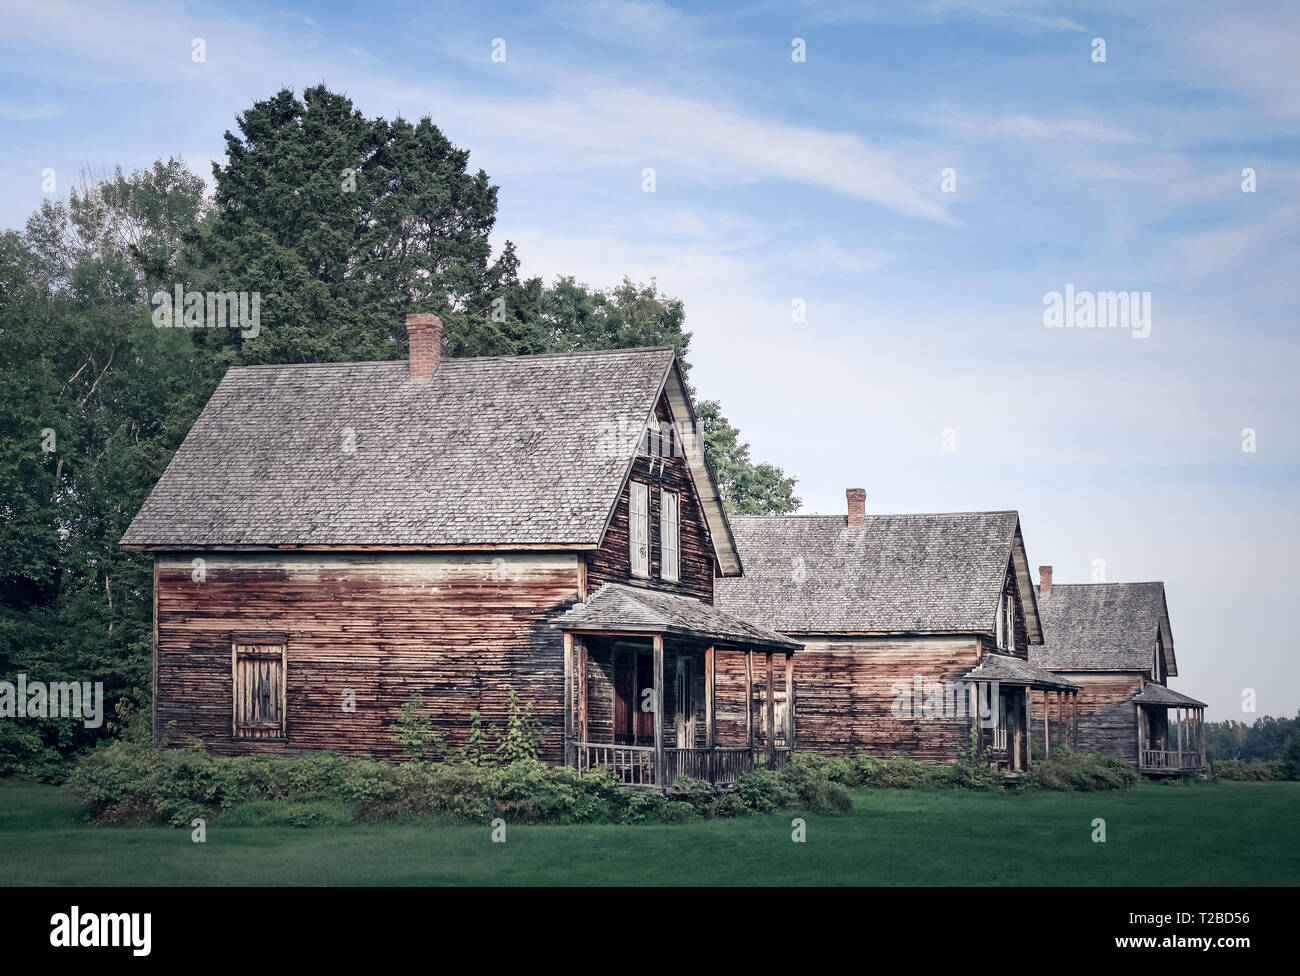 Abandoned village with wooden country houses from old times. - Stock Image